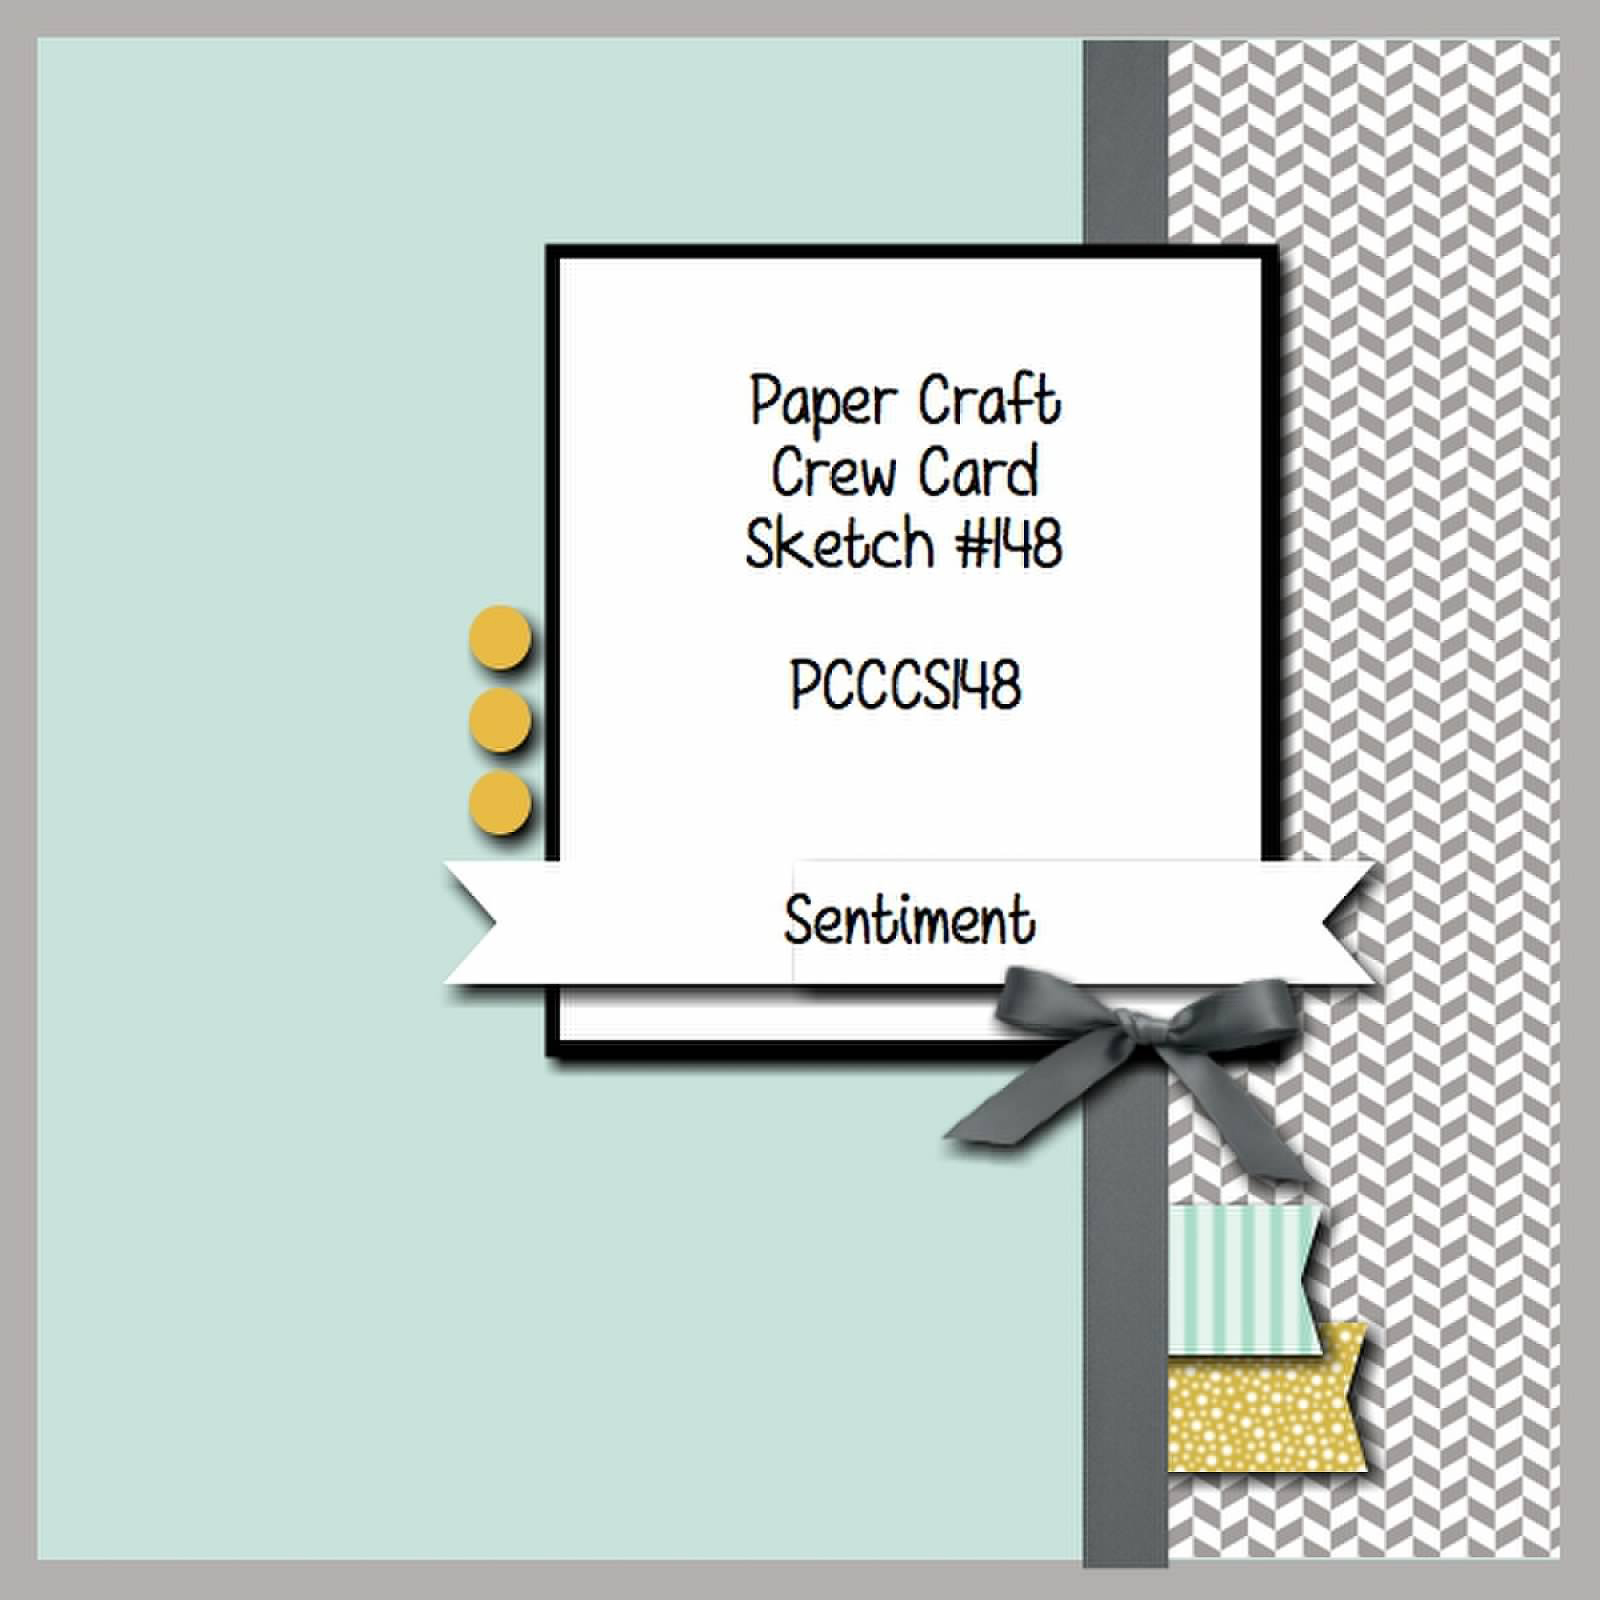 Paper Craft Crew Sketch shared by Stamping Imperfection